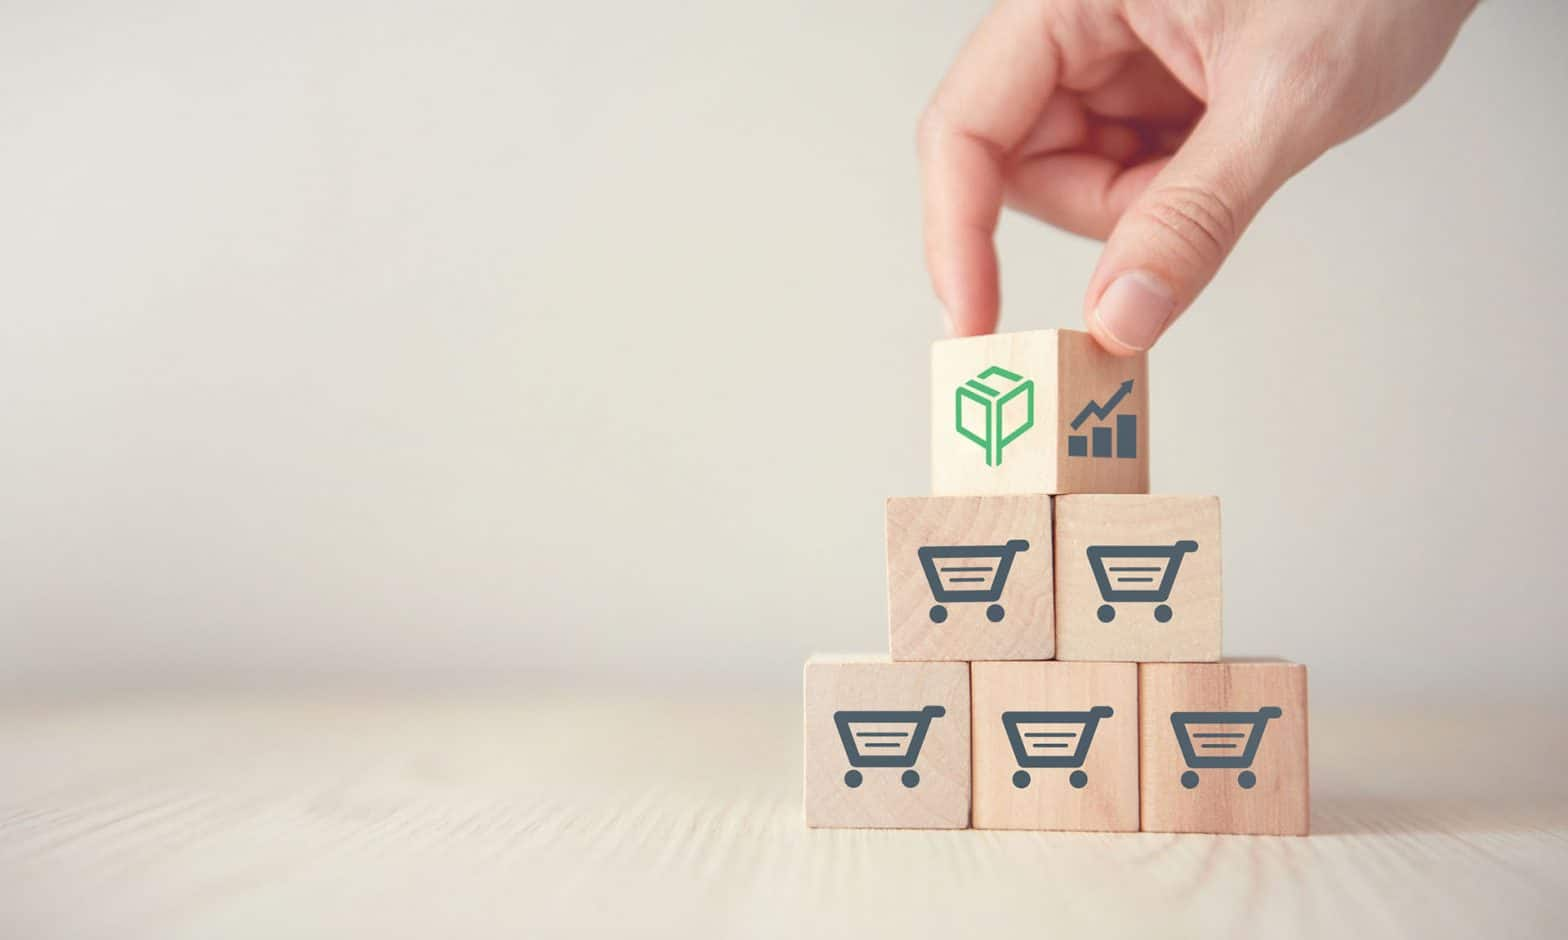 Pipe17 Raises $8 Million to Help High-Growth E-Commerce Merchants Close the Gap Between Demand and Operations